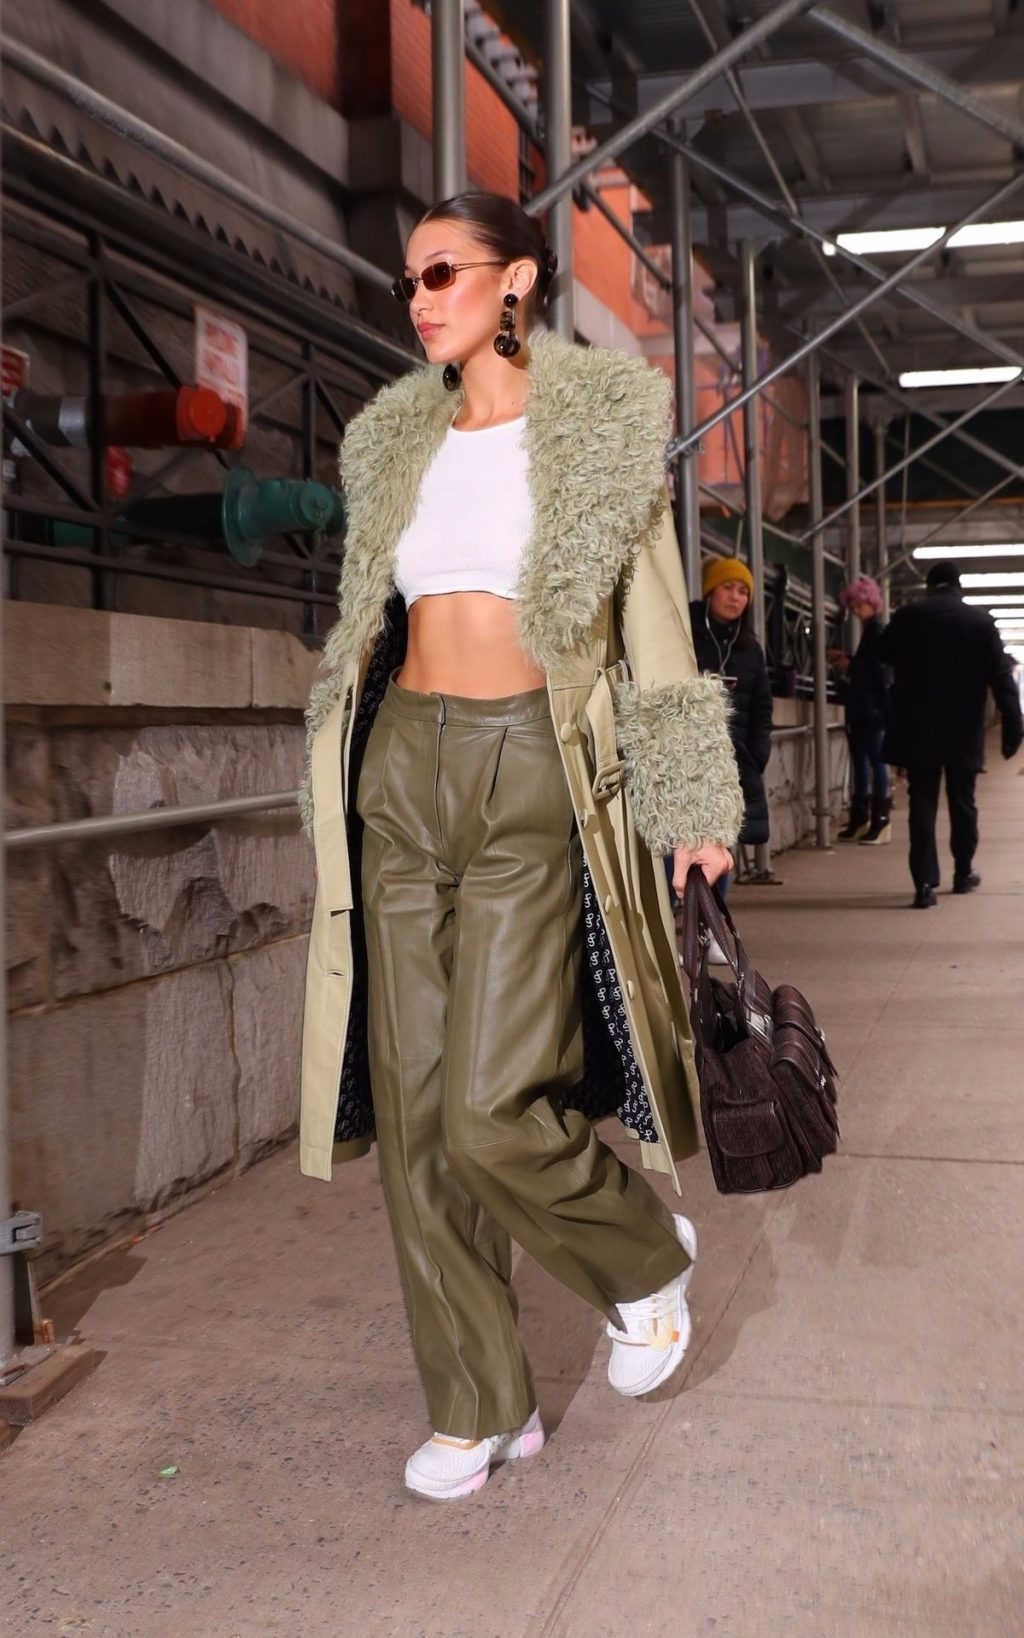 Bella Hadid See through The Fappening Blog 28 1024x1638 - Braless Bella Hadid Arrives at the Park Avenue Armory for the Marc Jacobs Fashion Show (59 Photos)